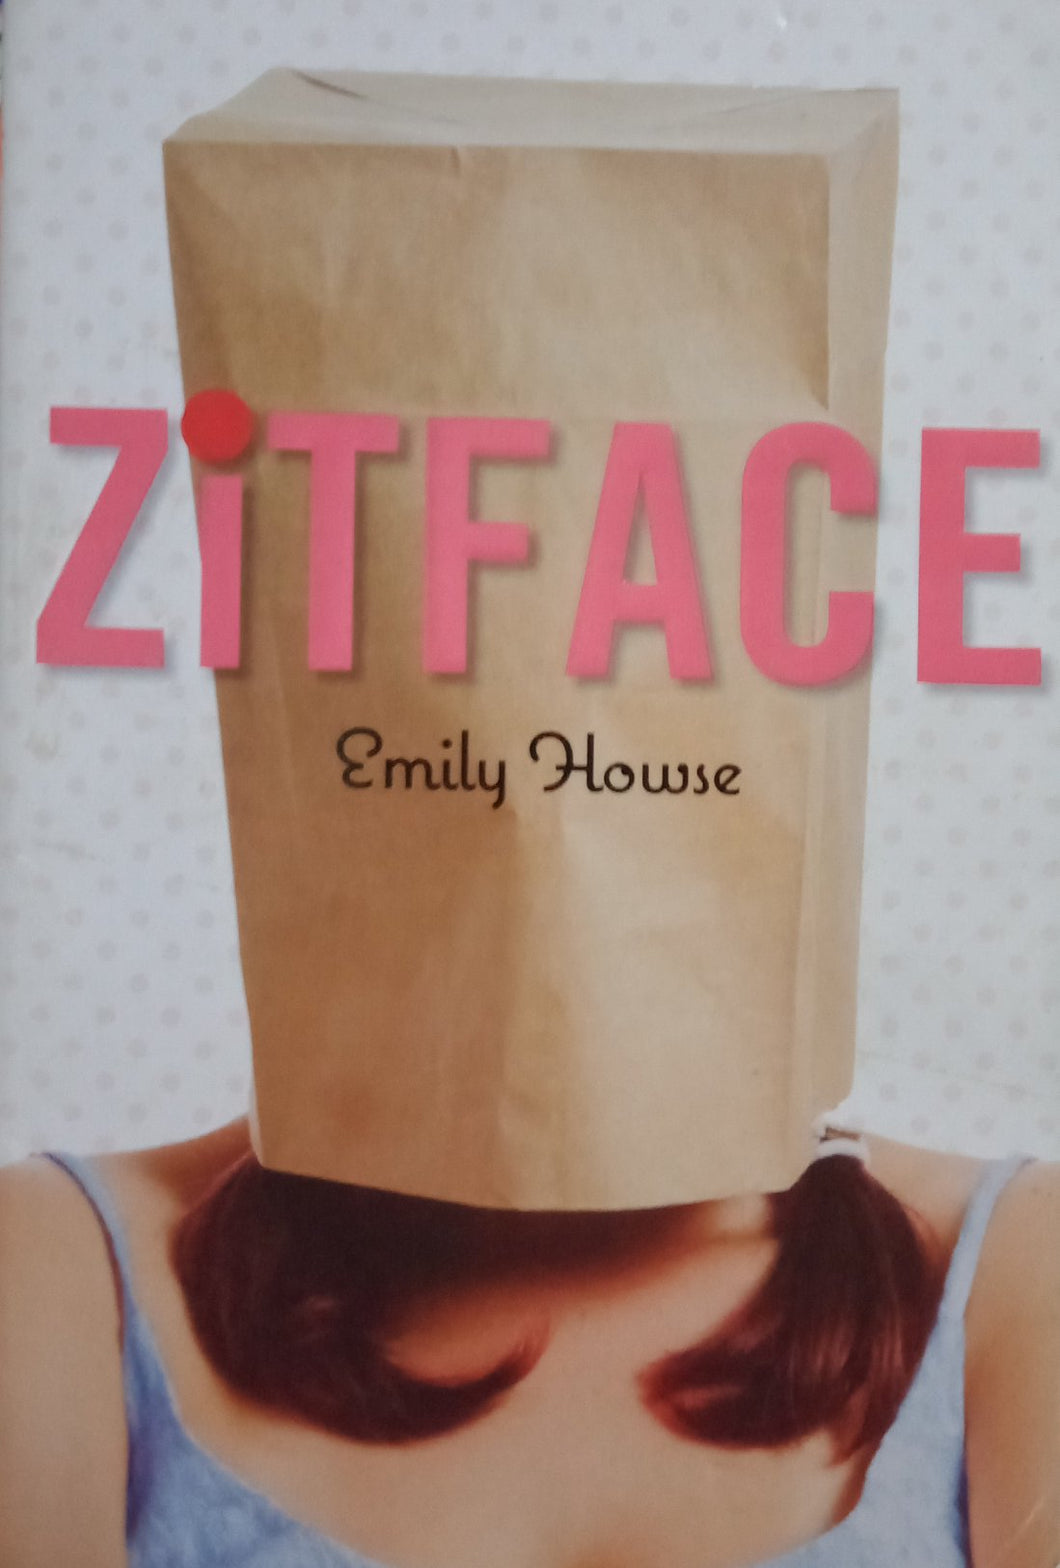 Zit face by emily howse